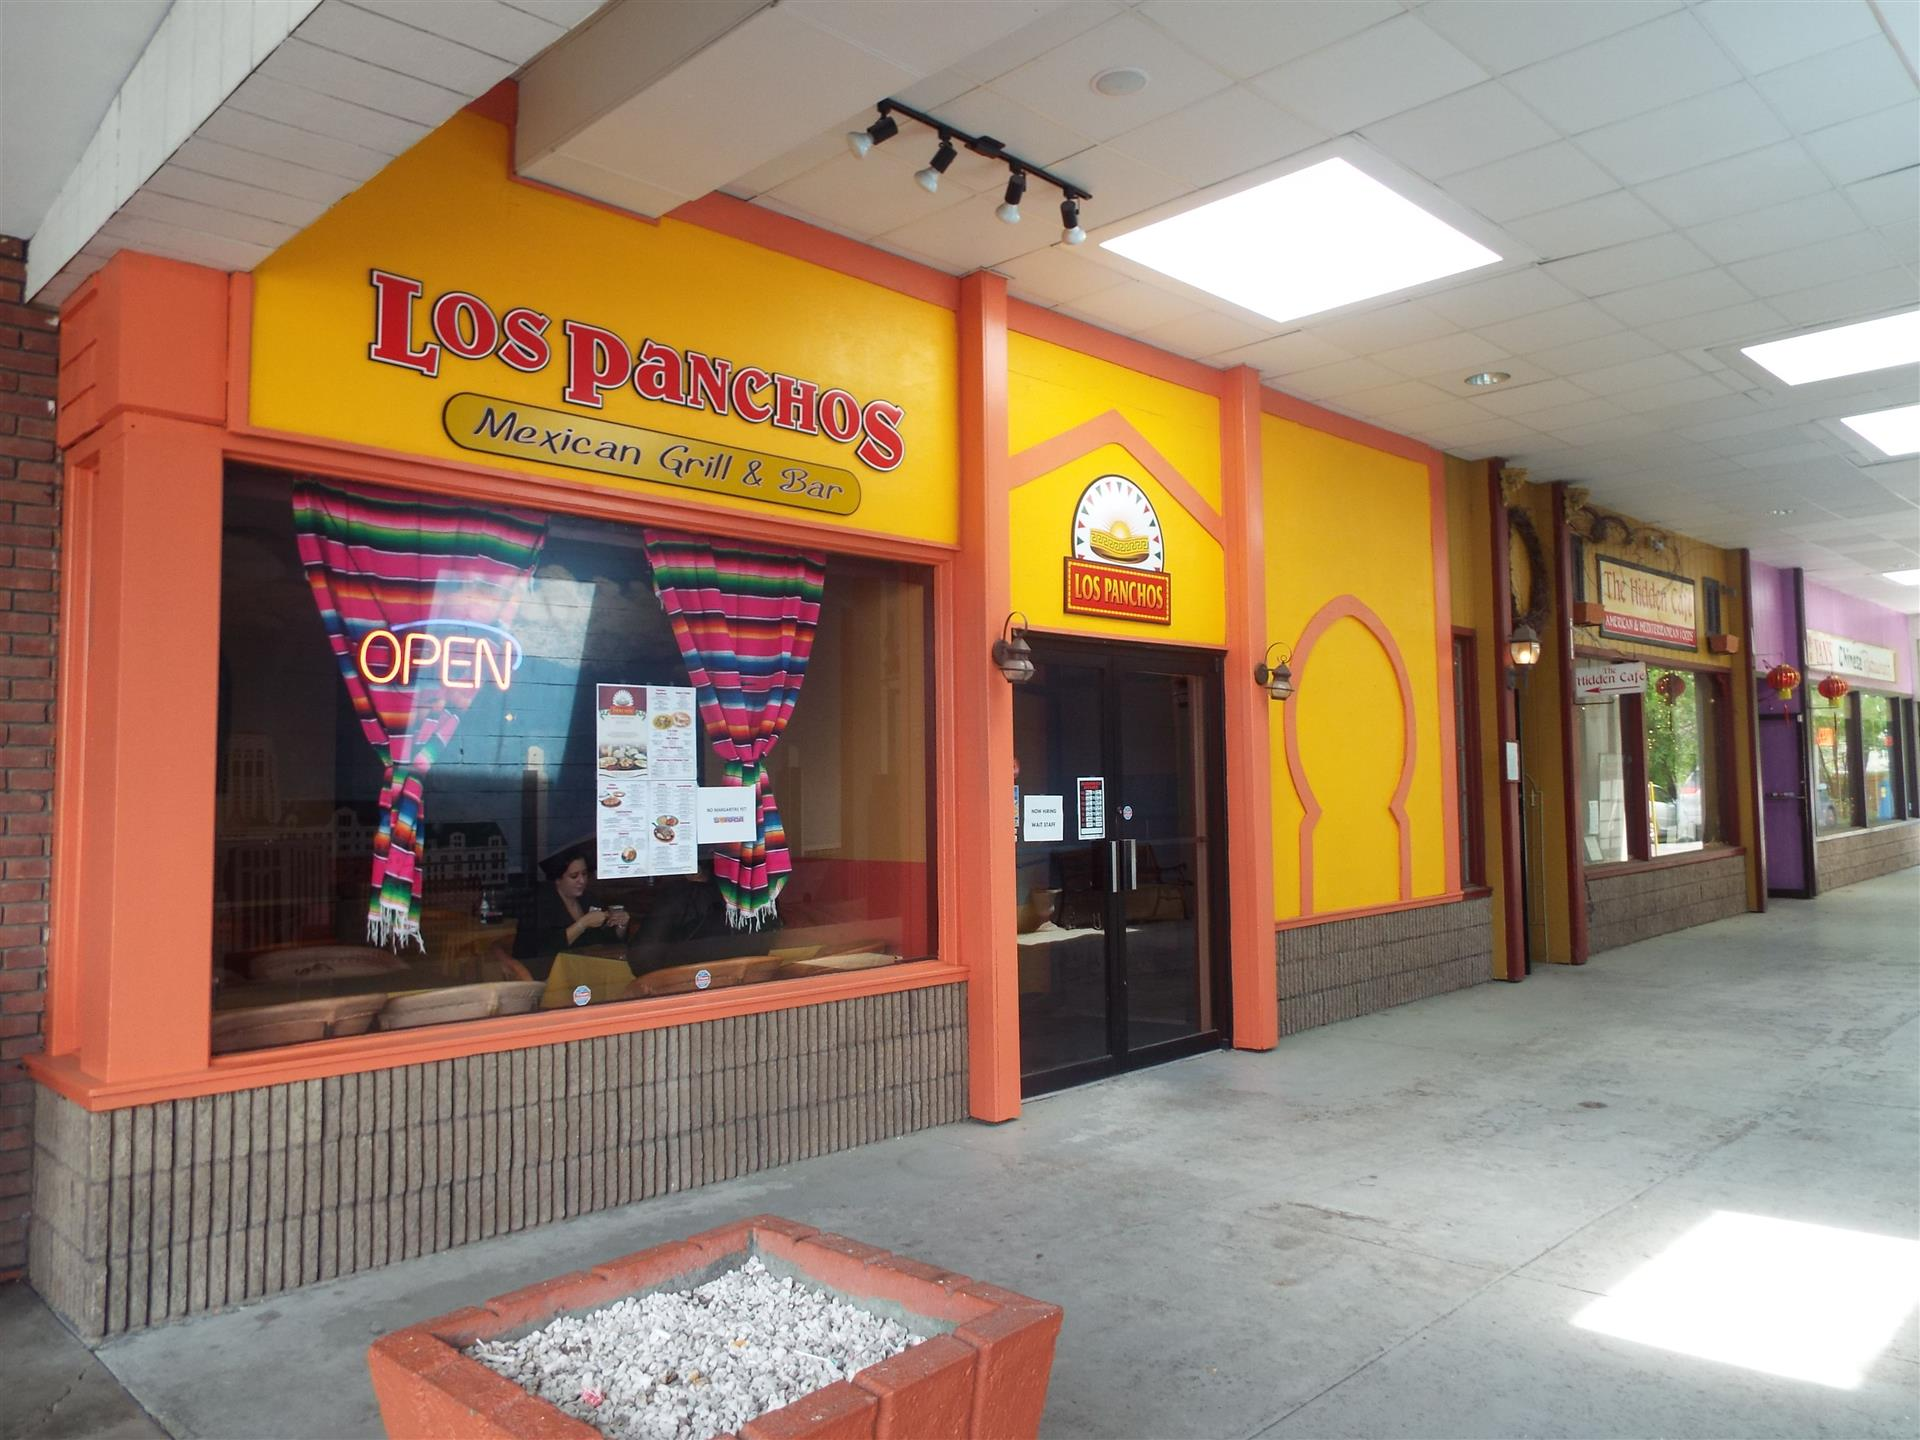 Outside of Building. Los Panchos Mexican Grill and Bar